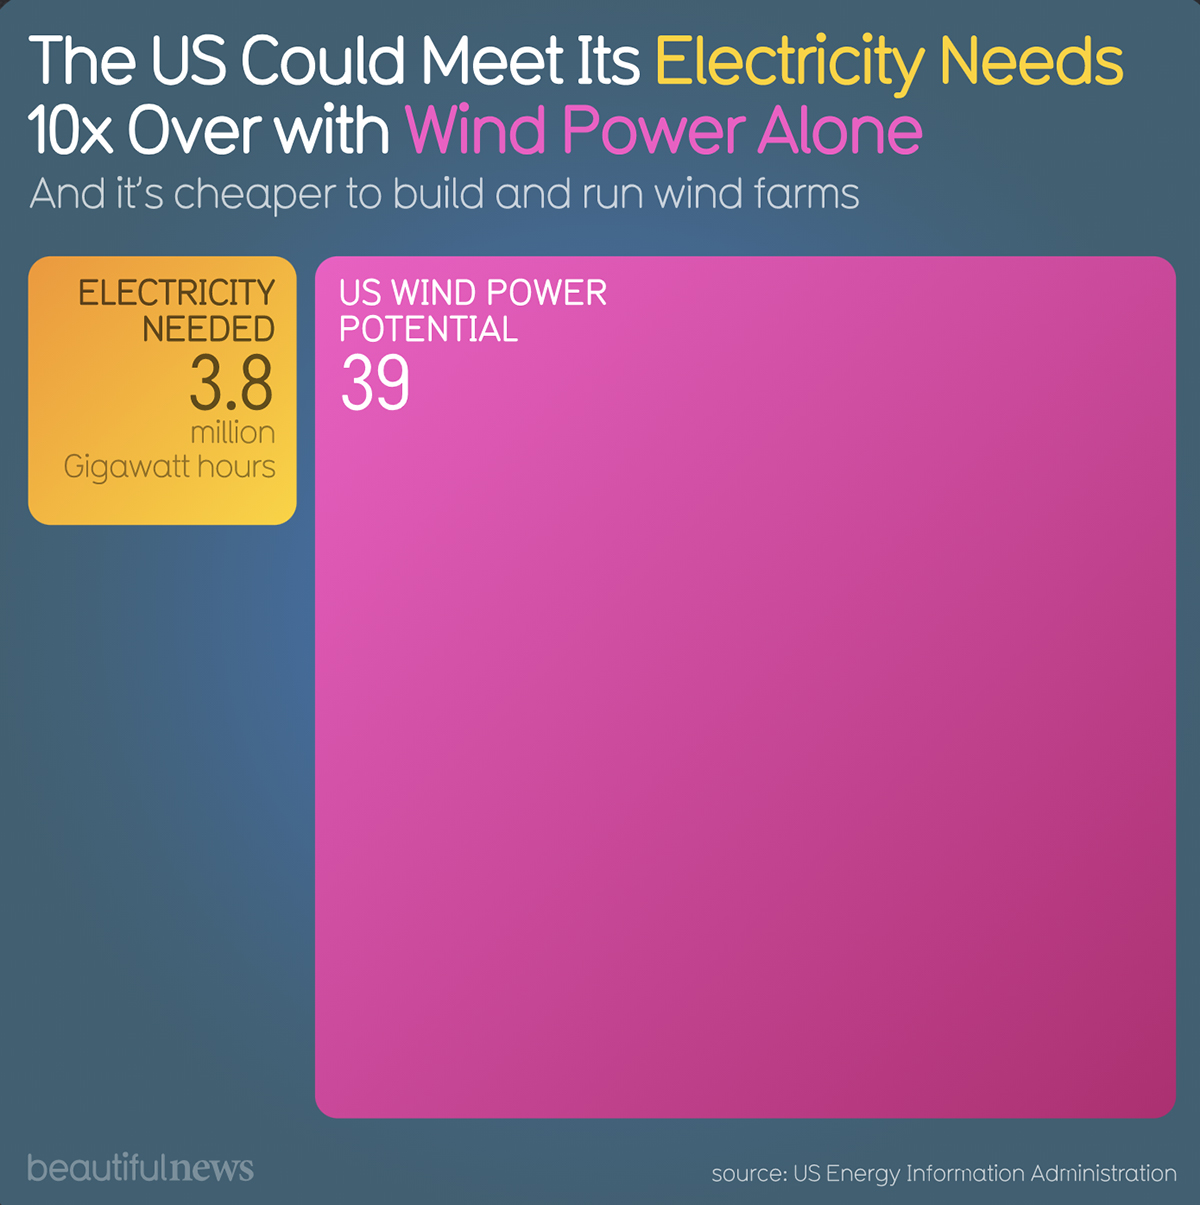 A minimalist data visualization showcasing wind power potential for electricity.